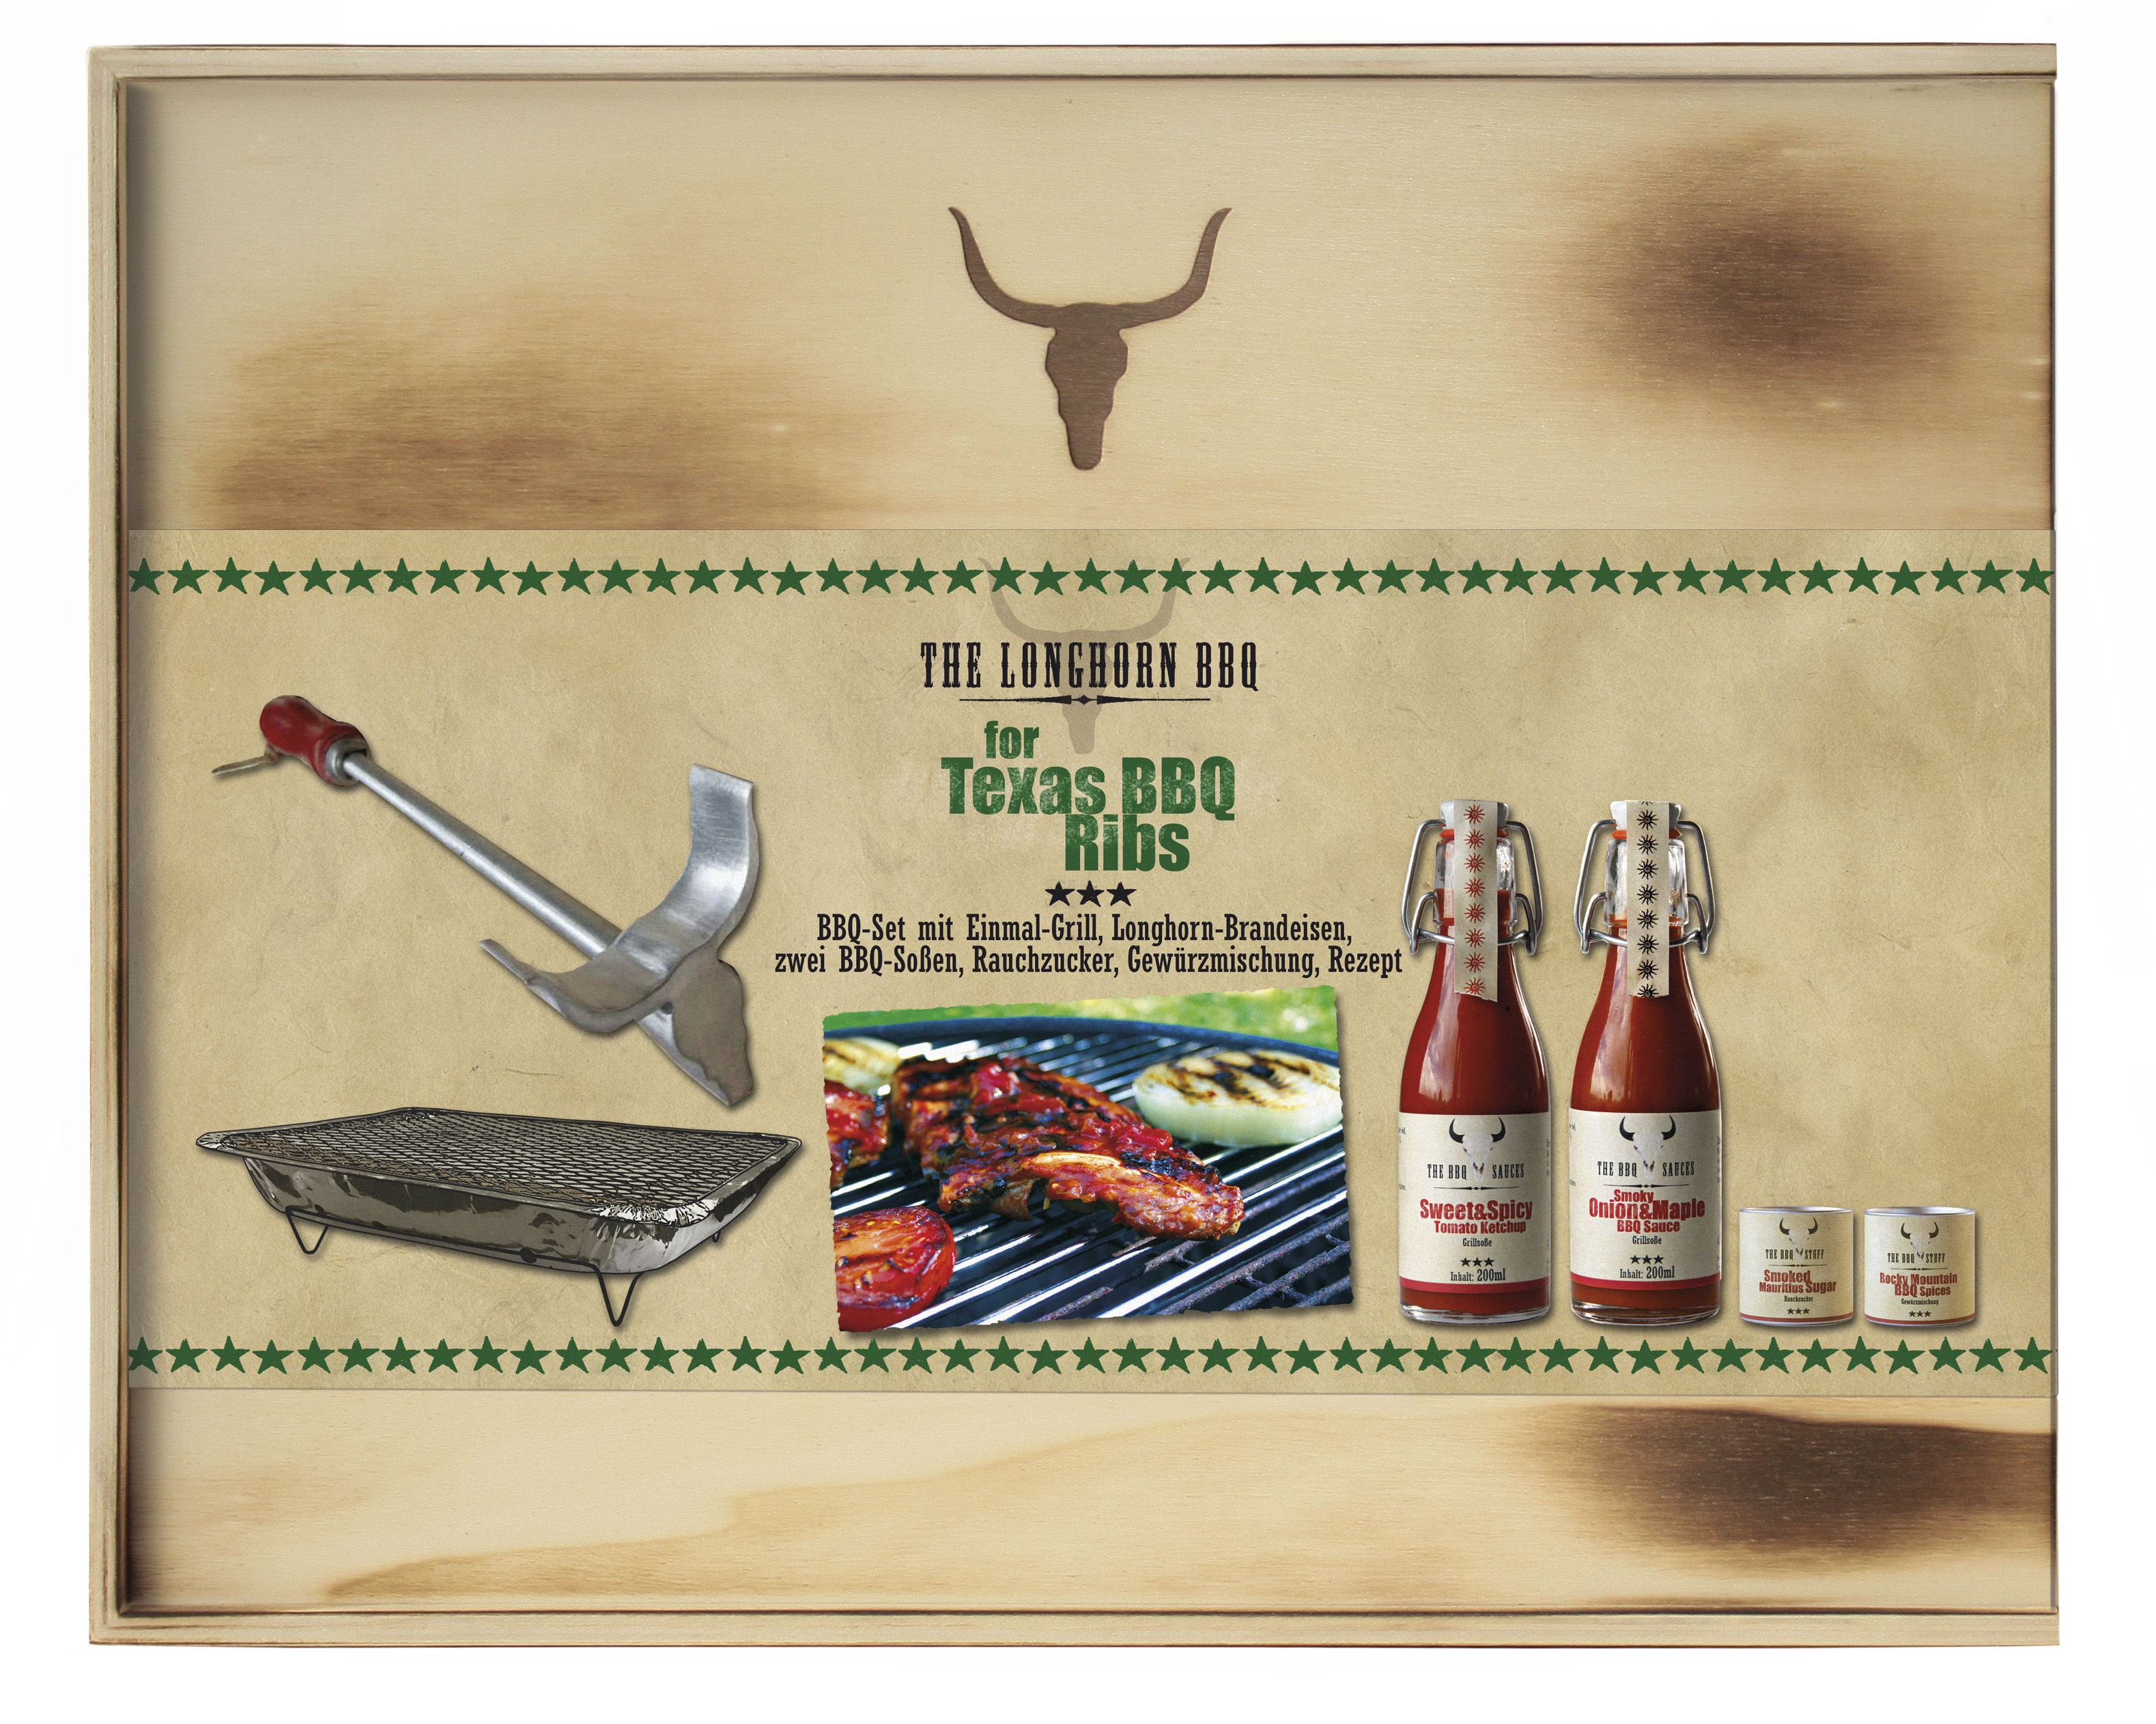 The Longhorn BBQ Kit - Texas BBQ Ribs